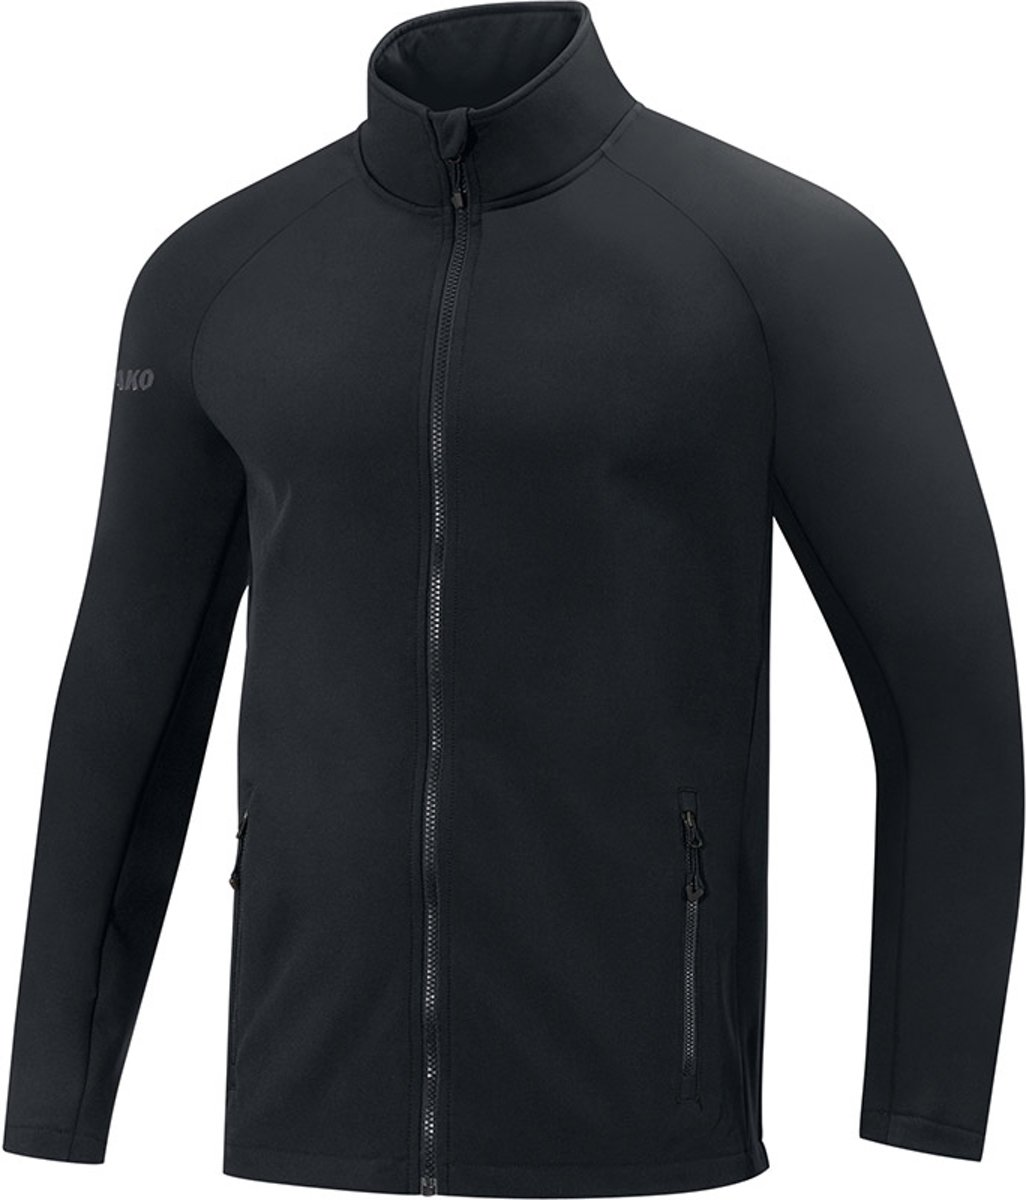 Jako Team Dames Softshell Jas - Softshelljassen  - zwart - 36